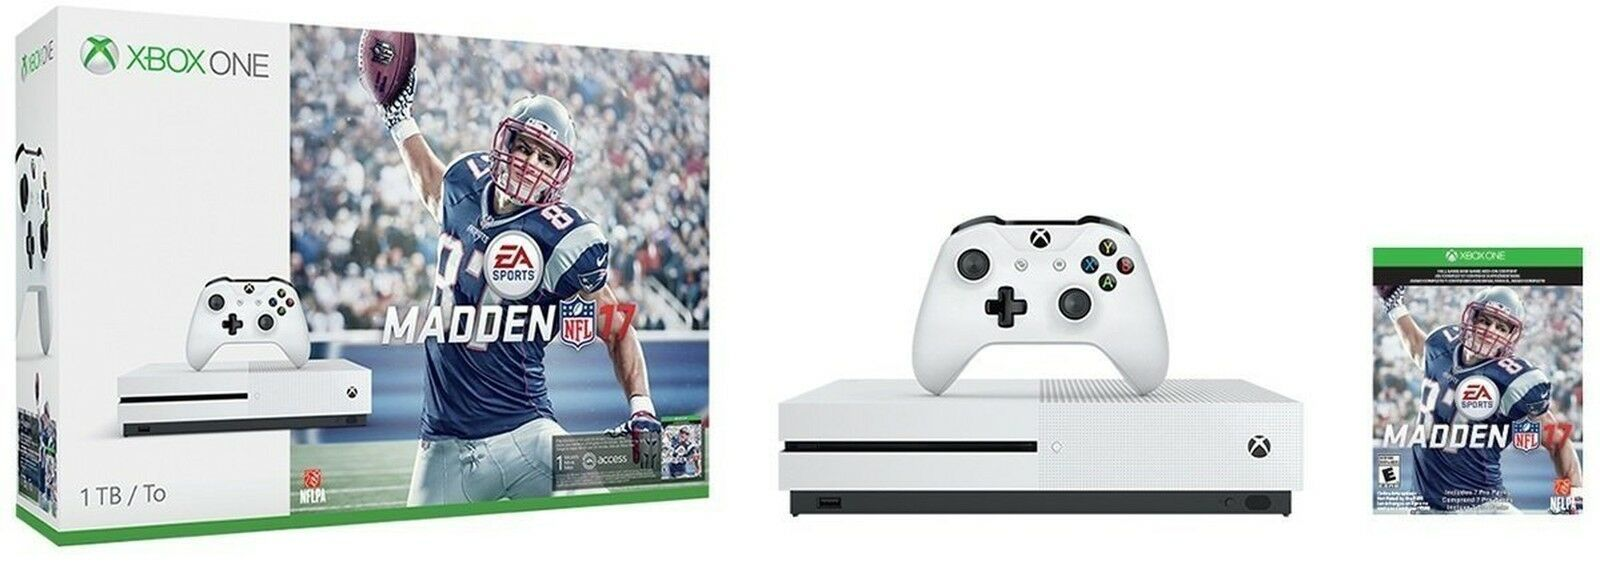 Xbox One S 1TB Console  Madden NFL 17 NEW!